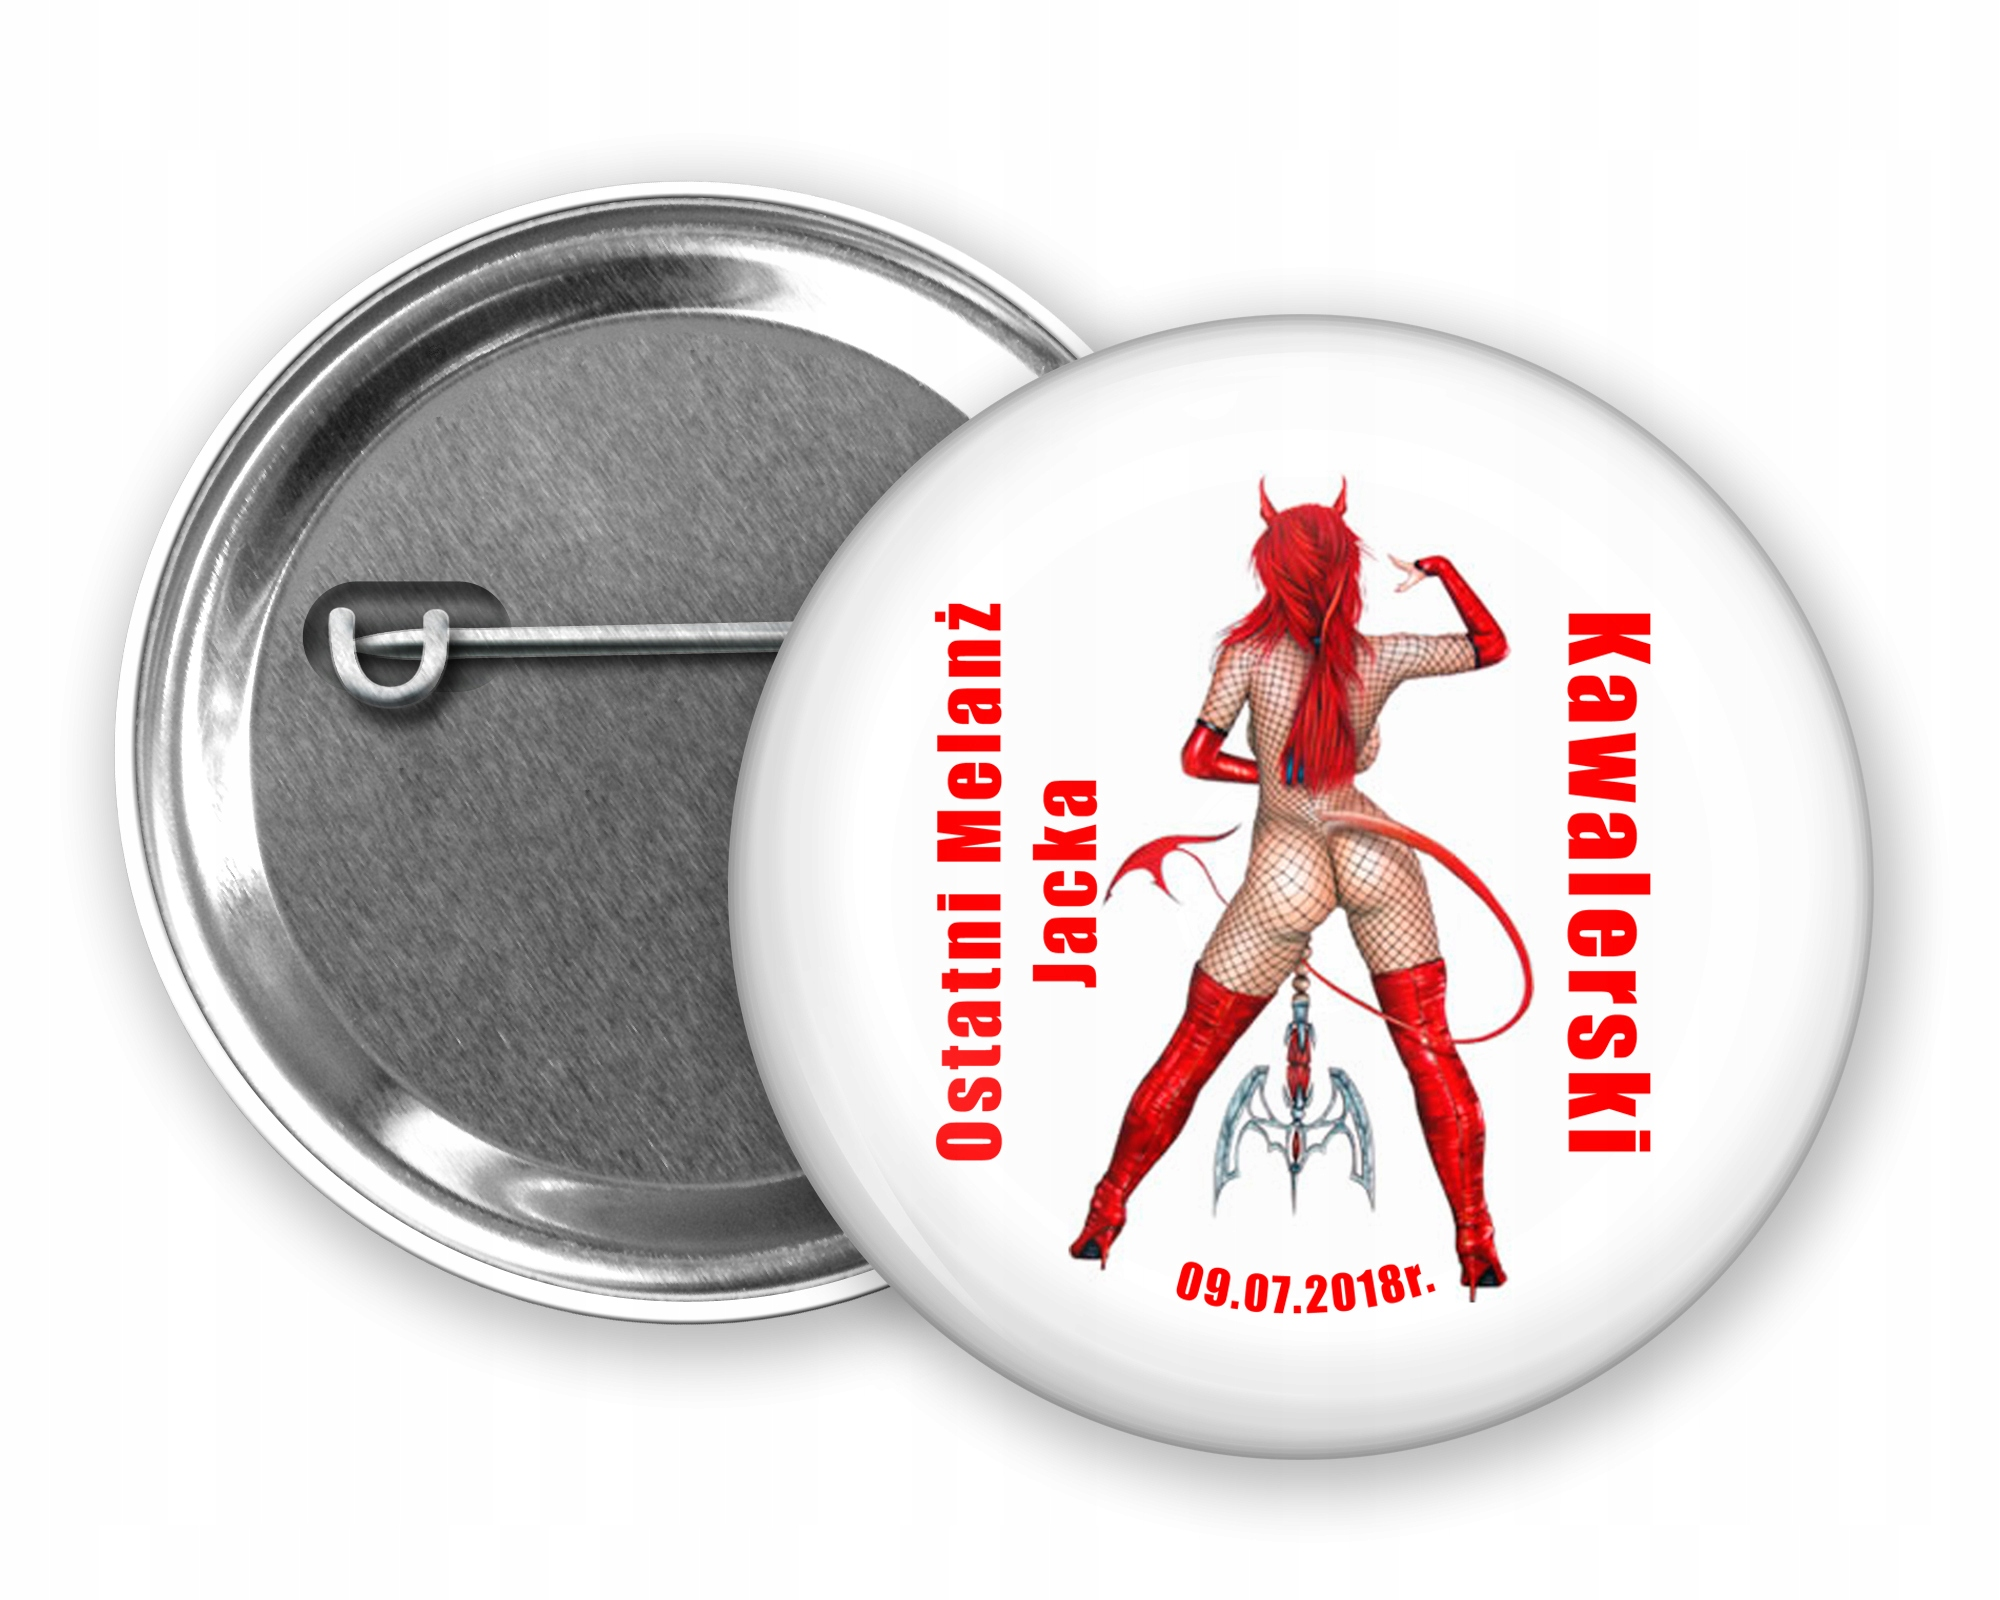 Item BACHELORETTE party-BACHELOR party buttons WEDDING event